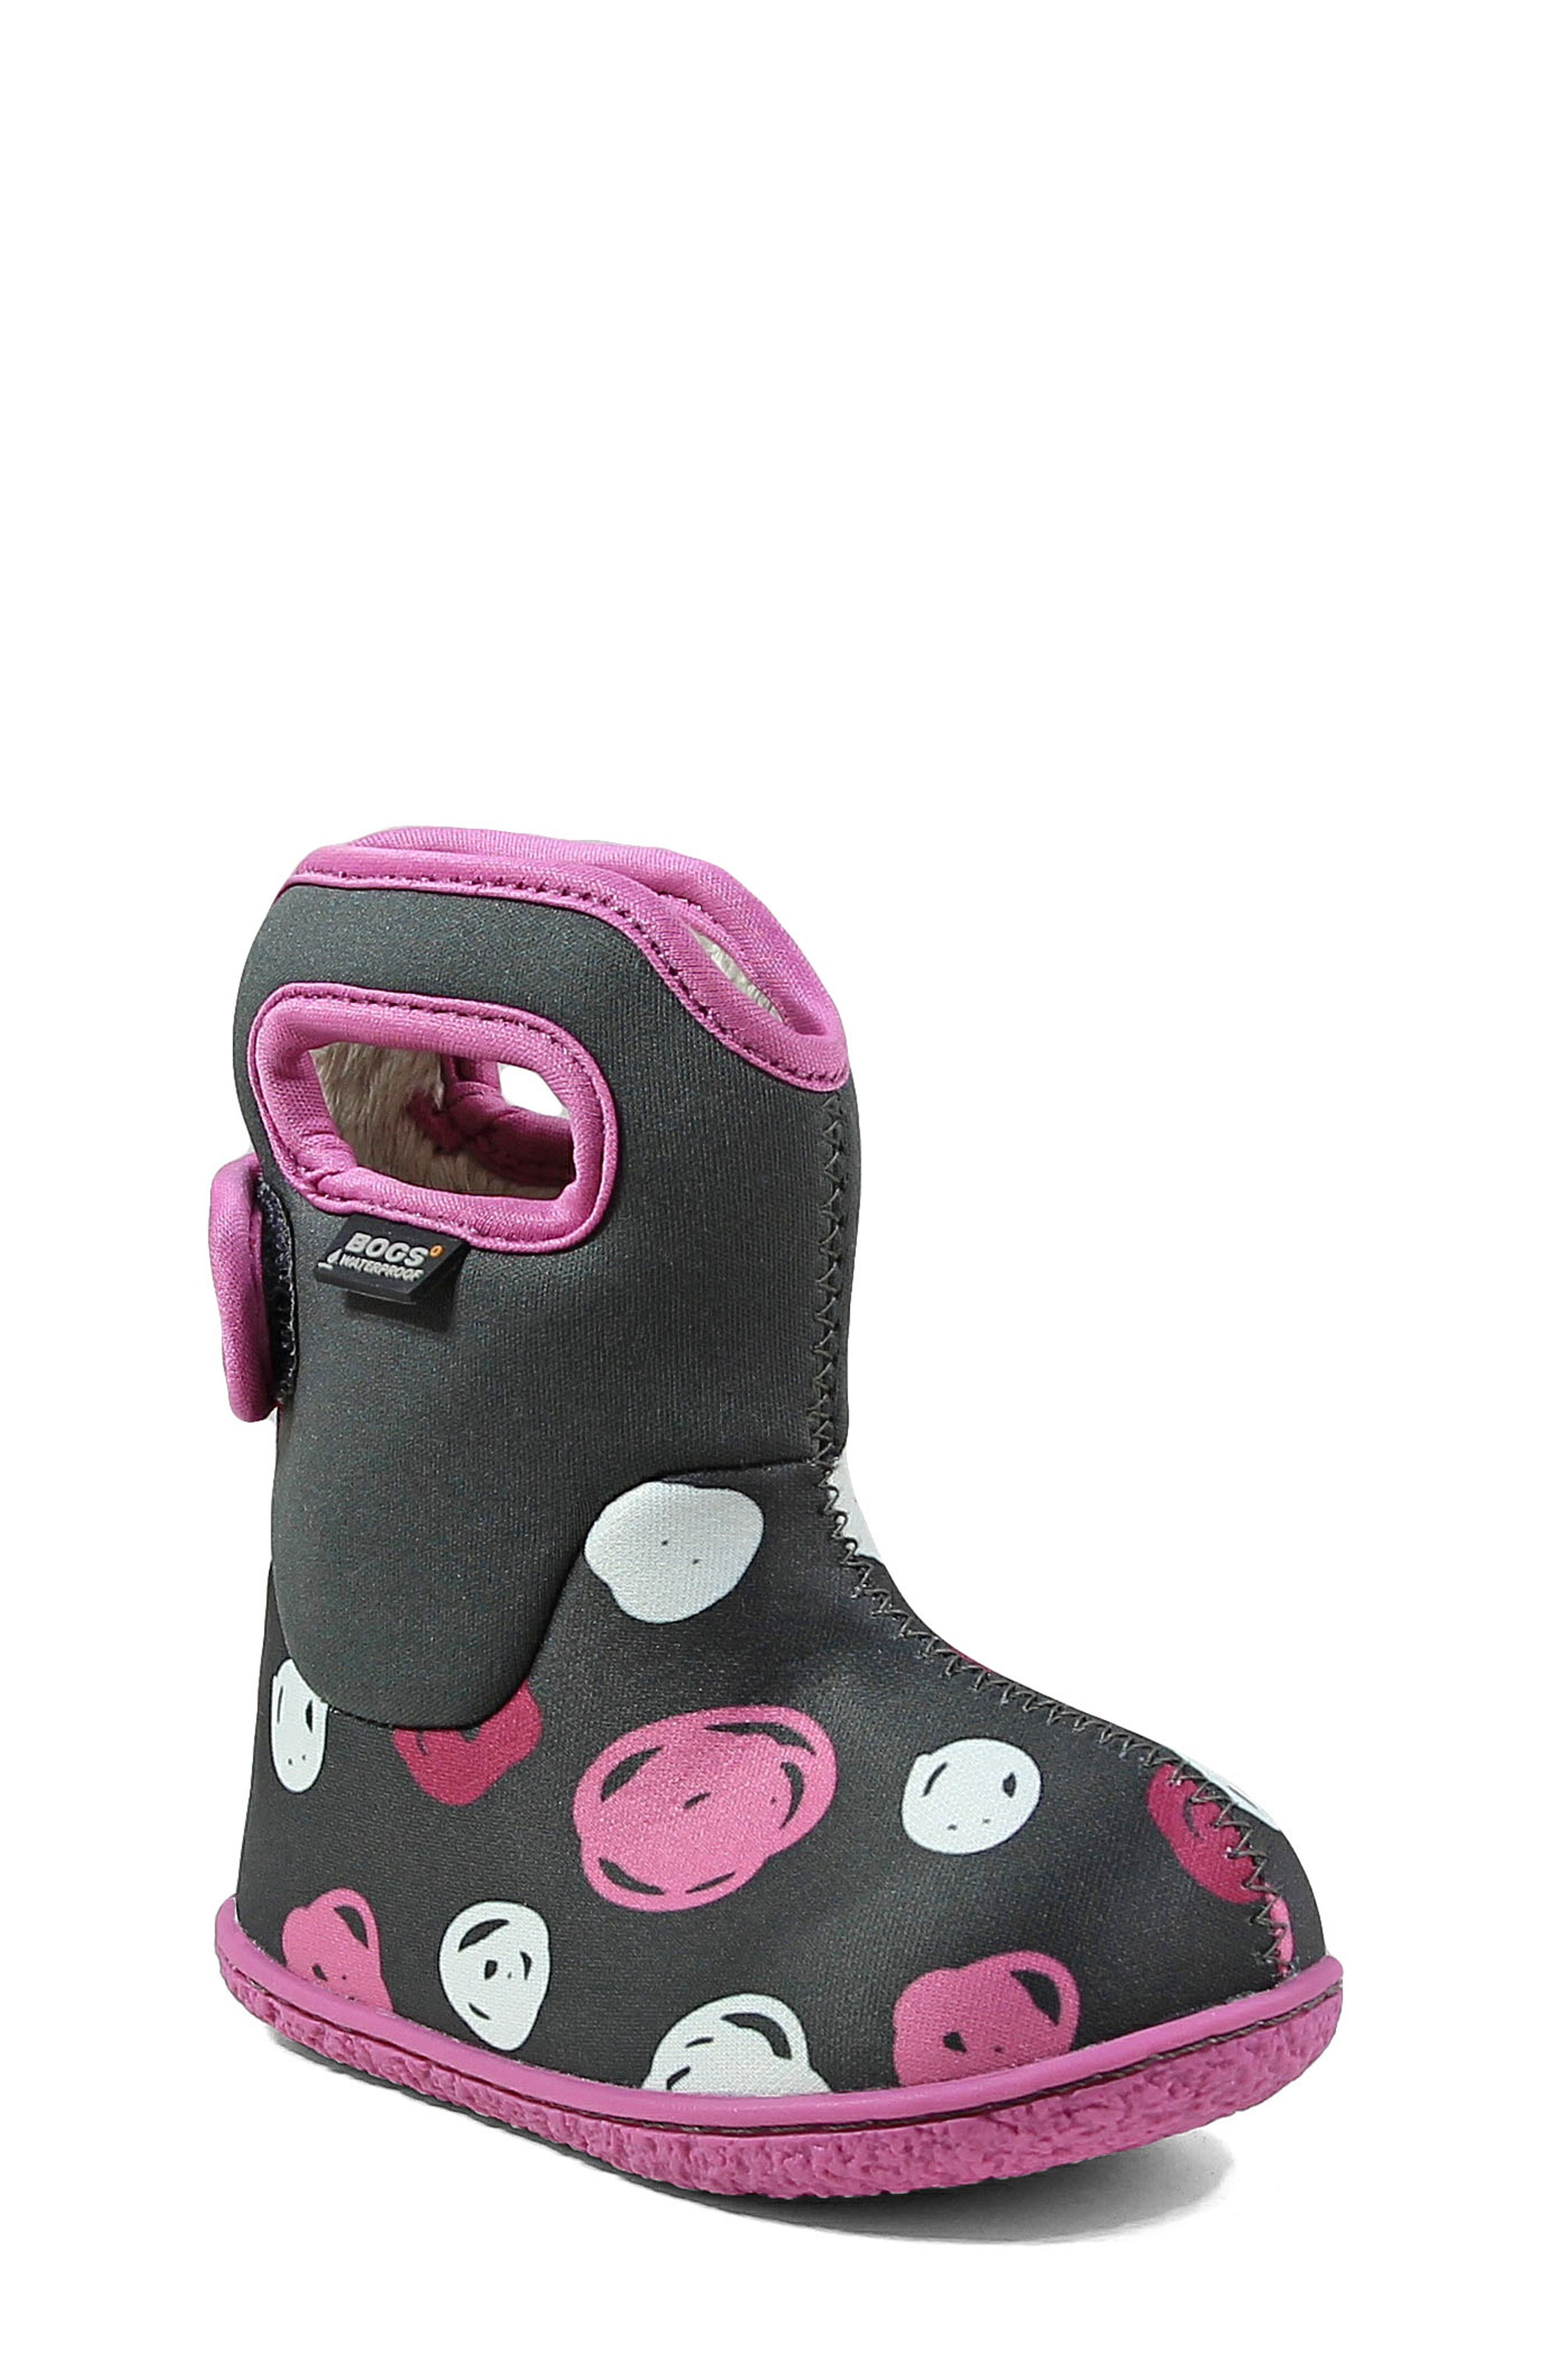 Baby Bogs Classic Sketched Dots Washable Insulated Waterproof Boot,                         Main,                         color, DARK GRAY MULTI